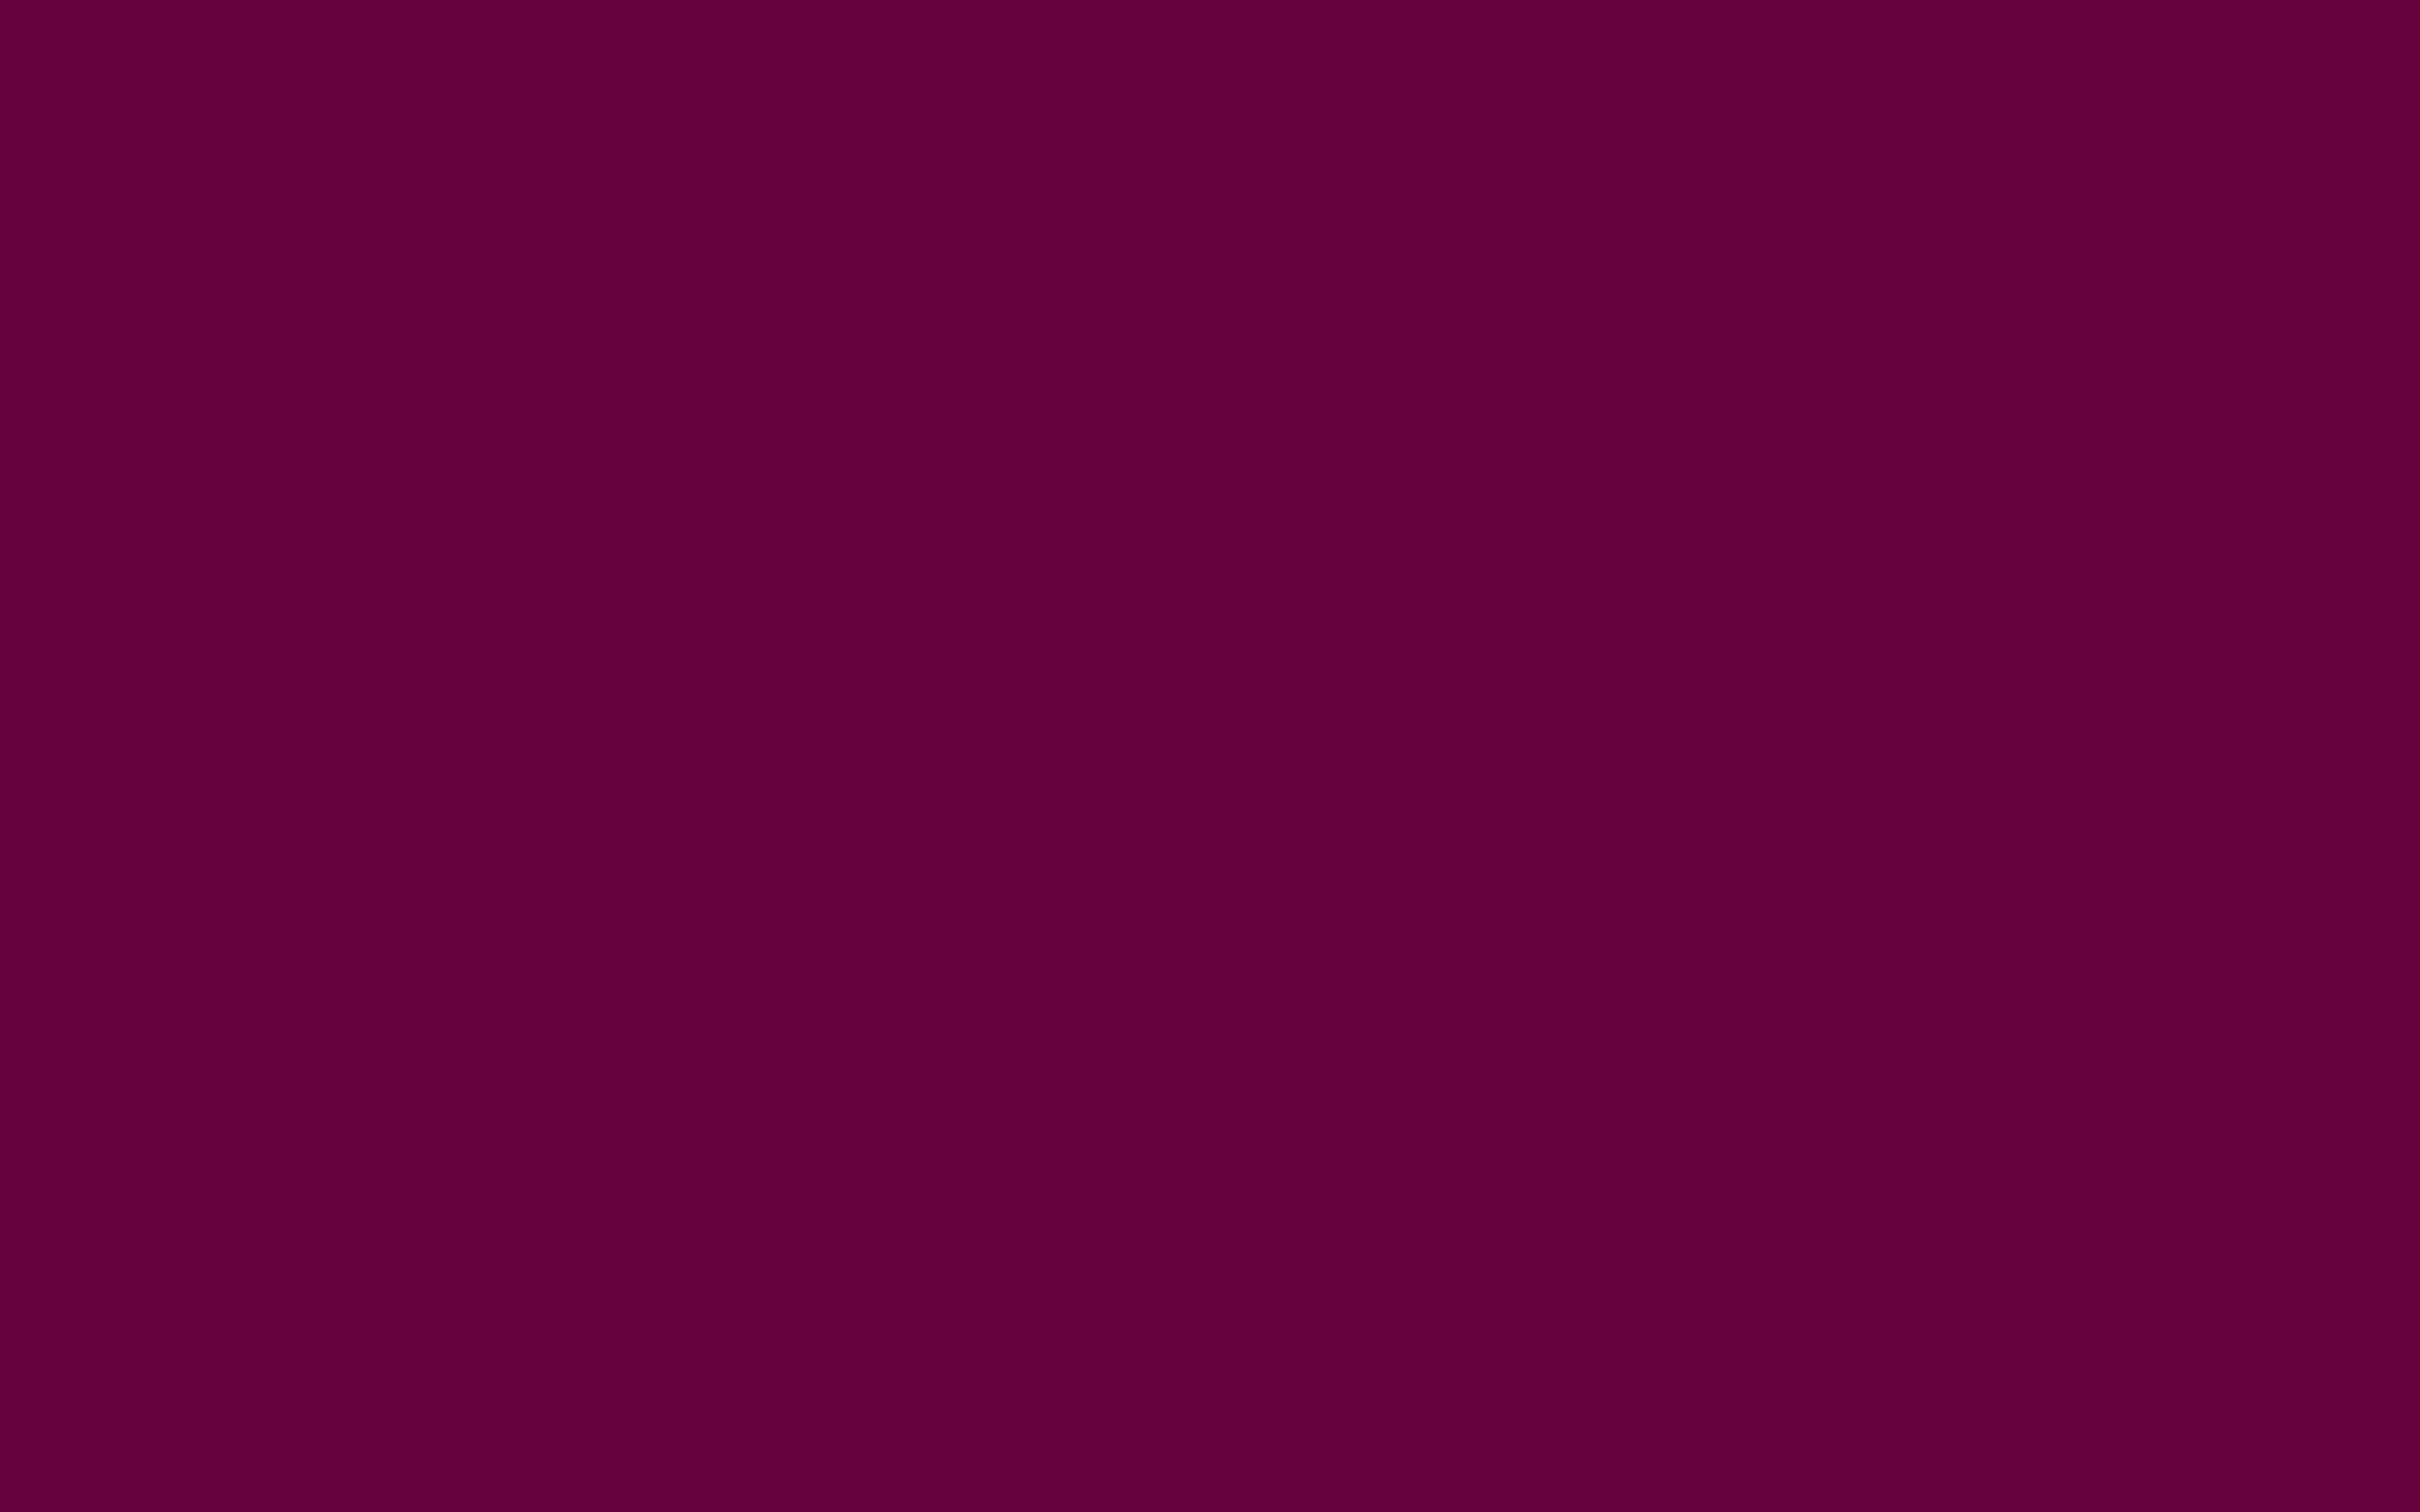 2880x1800 Tyrian Purple Solid Color Background